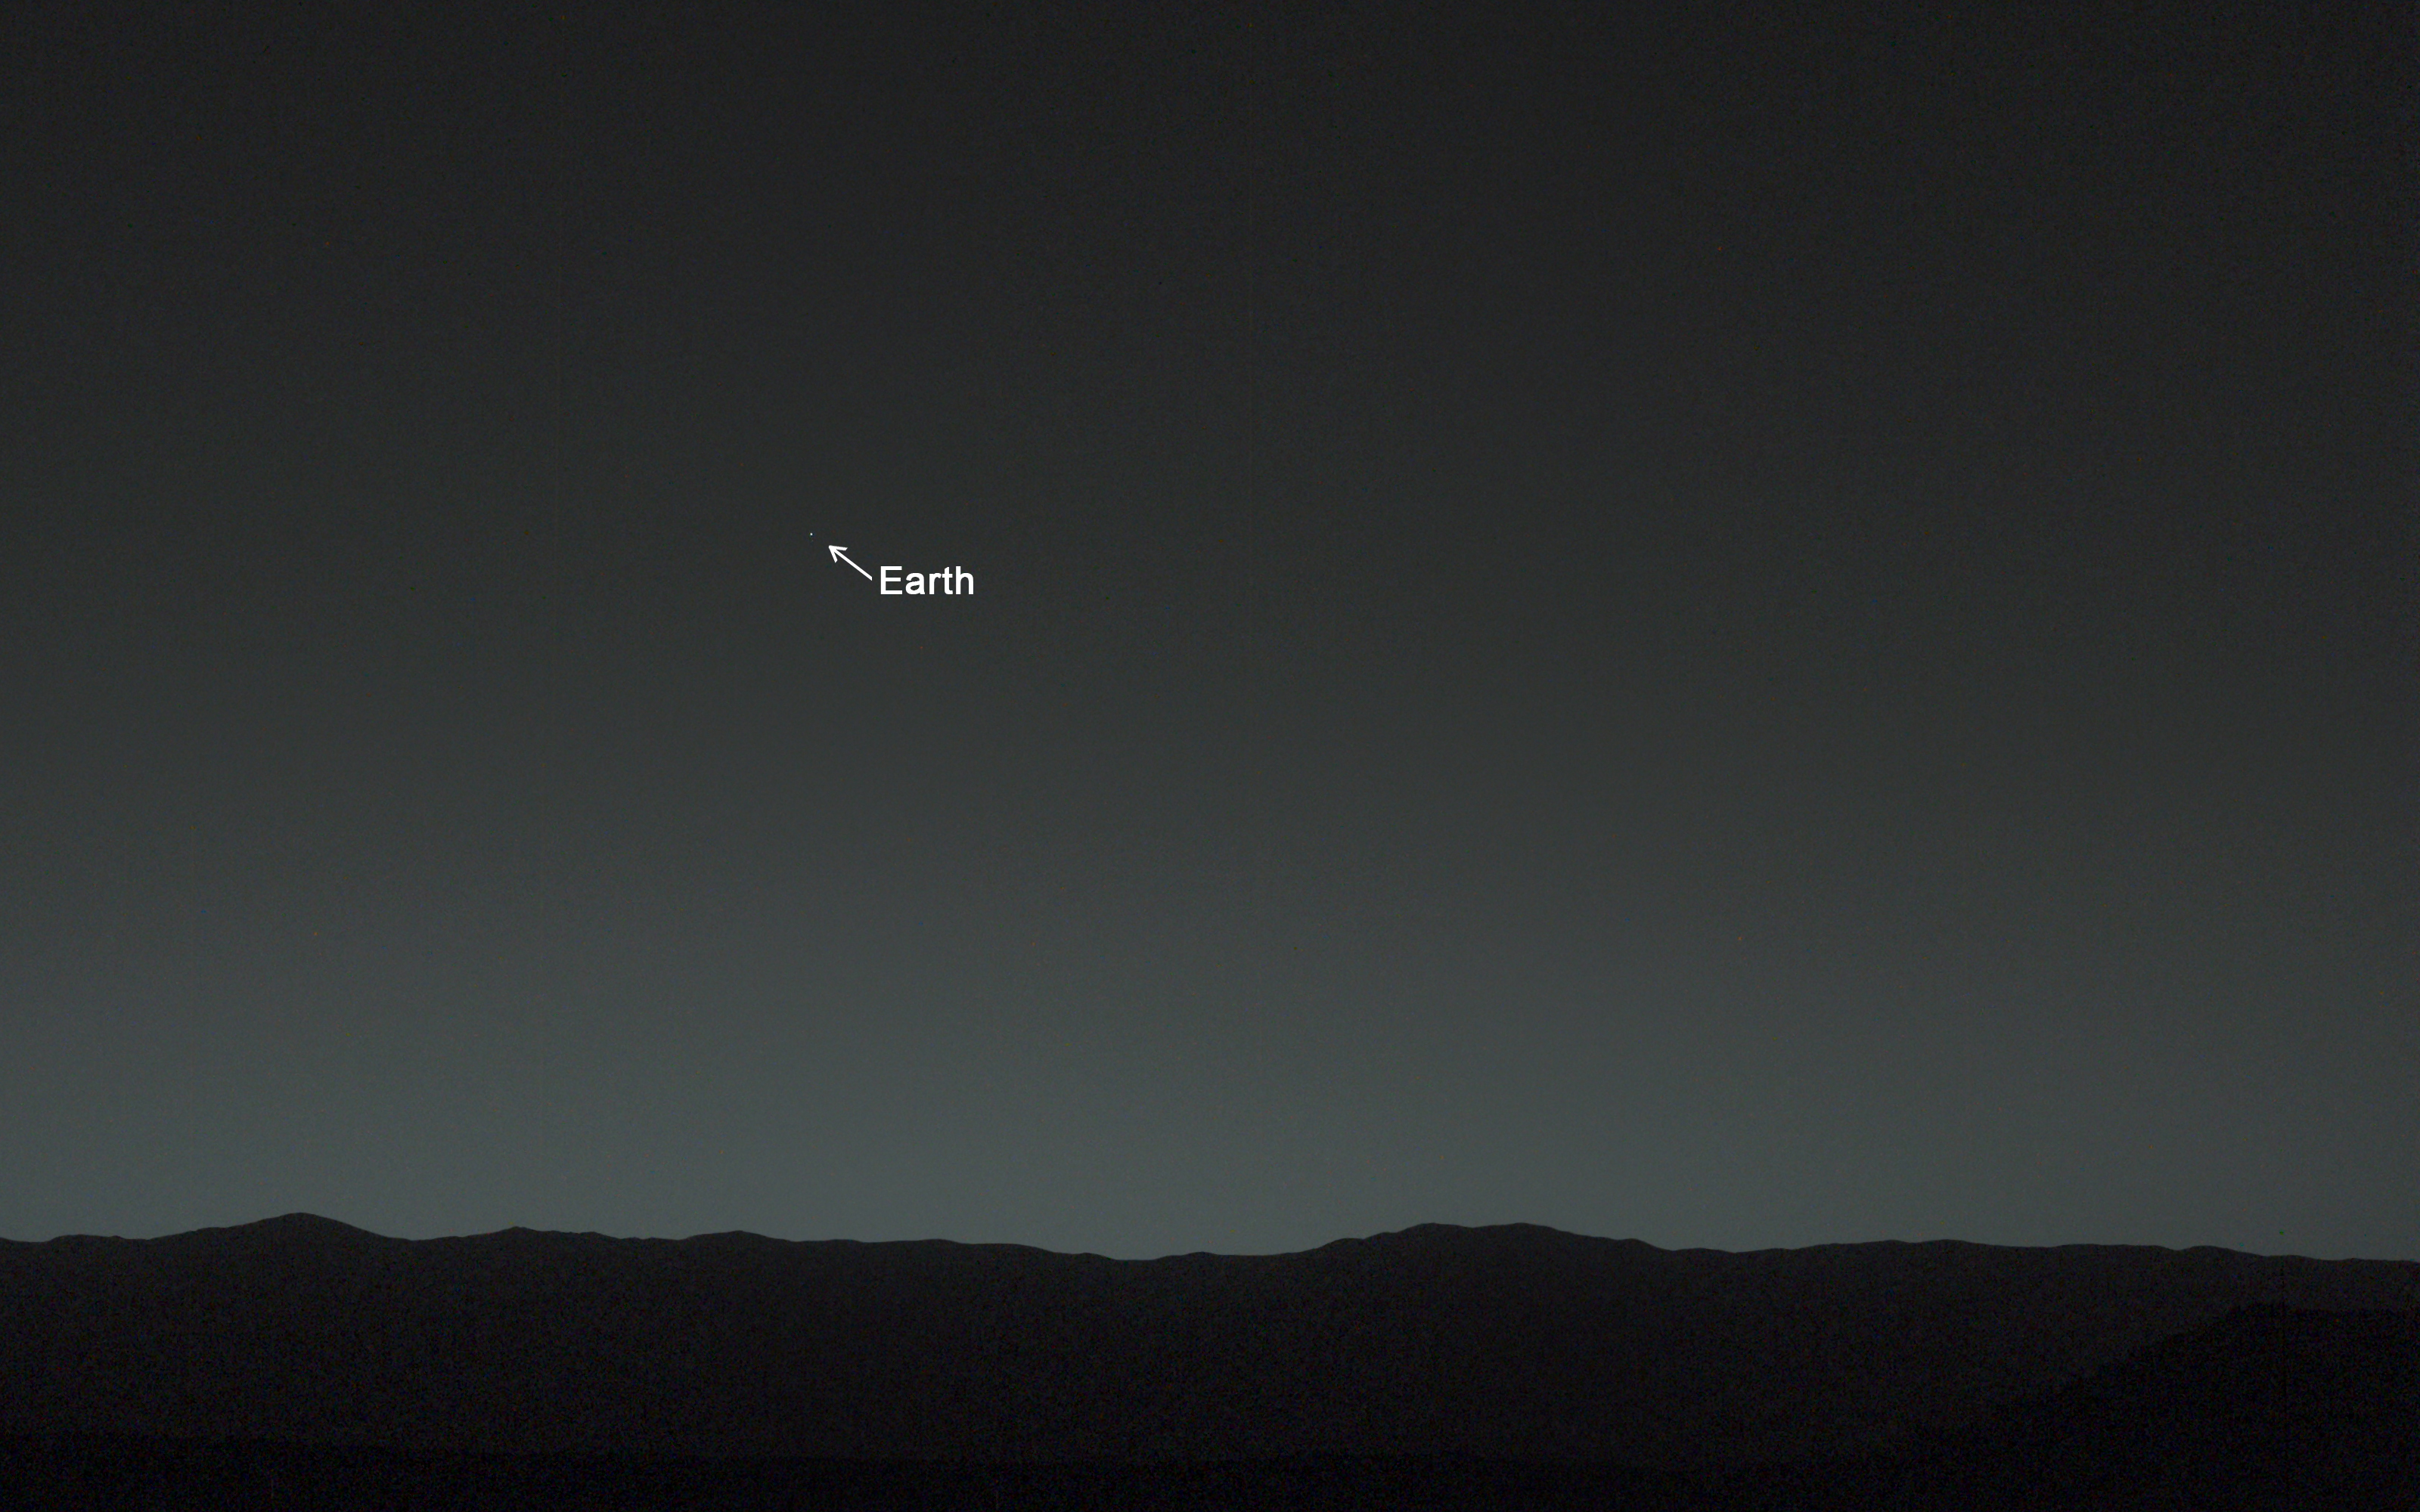 NASA's Curiosity Mars rover captured this image of the Martian horizon 80 minutes after sunset. Earth, the brightest object seen in the twilight sky, is annotated. Image courtesy of NASA/JPL-Caltech/MSSS/TAMU